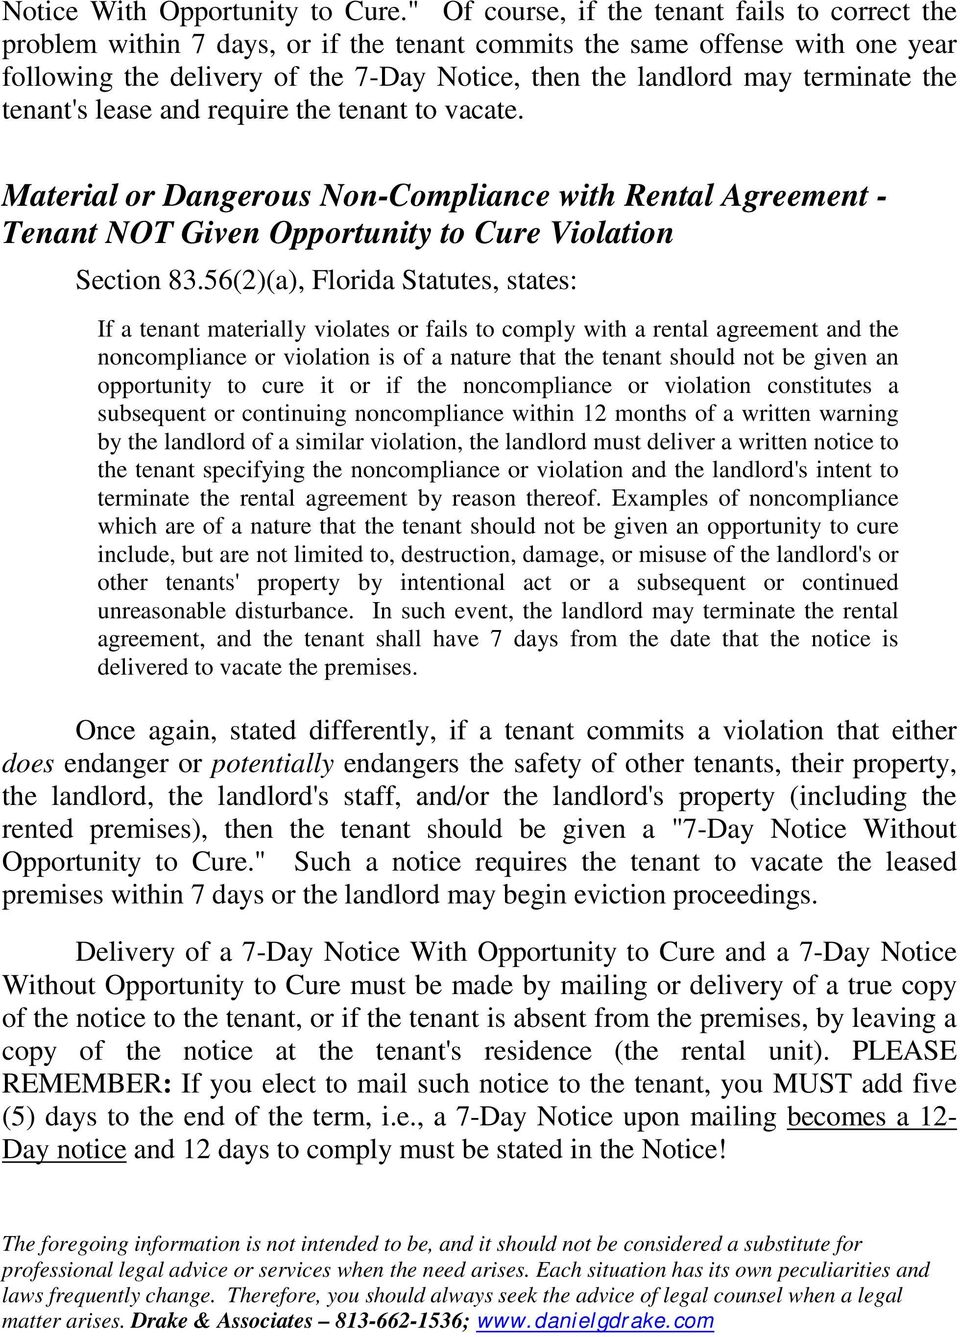 terminate the tenant's lease and require the tenant to vacate. Material or Dangerous Non-Compliance with Rental Agreement - Tenant NOT Given Opportunity to Cure Violation Section 83.